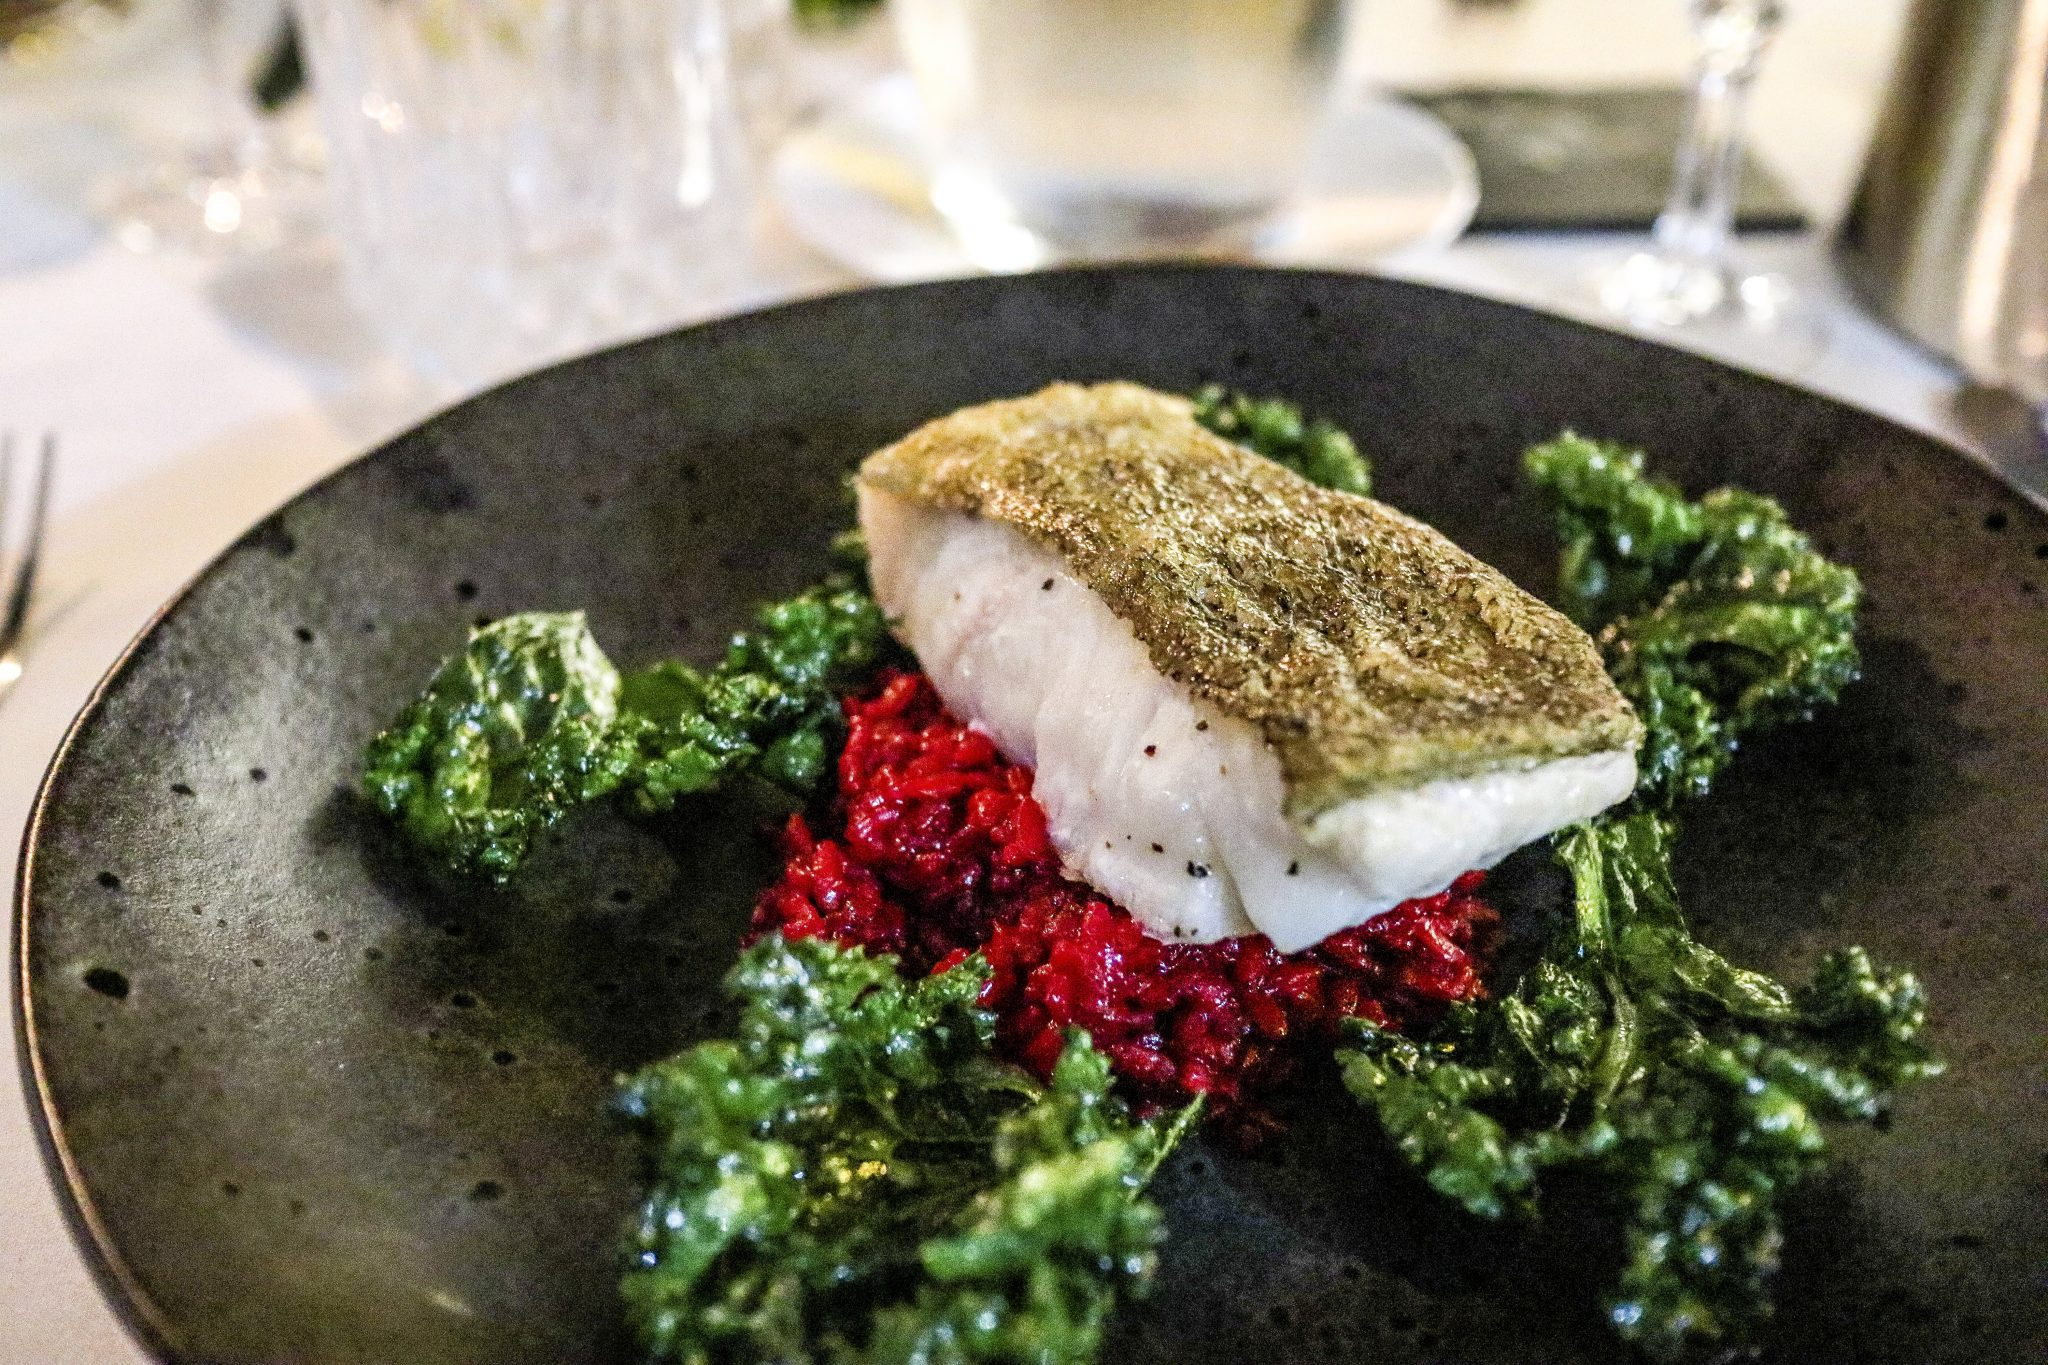 Cod Loin served with beetroot ravioli and crispy Kale (a 'Special of The Day')